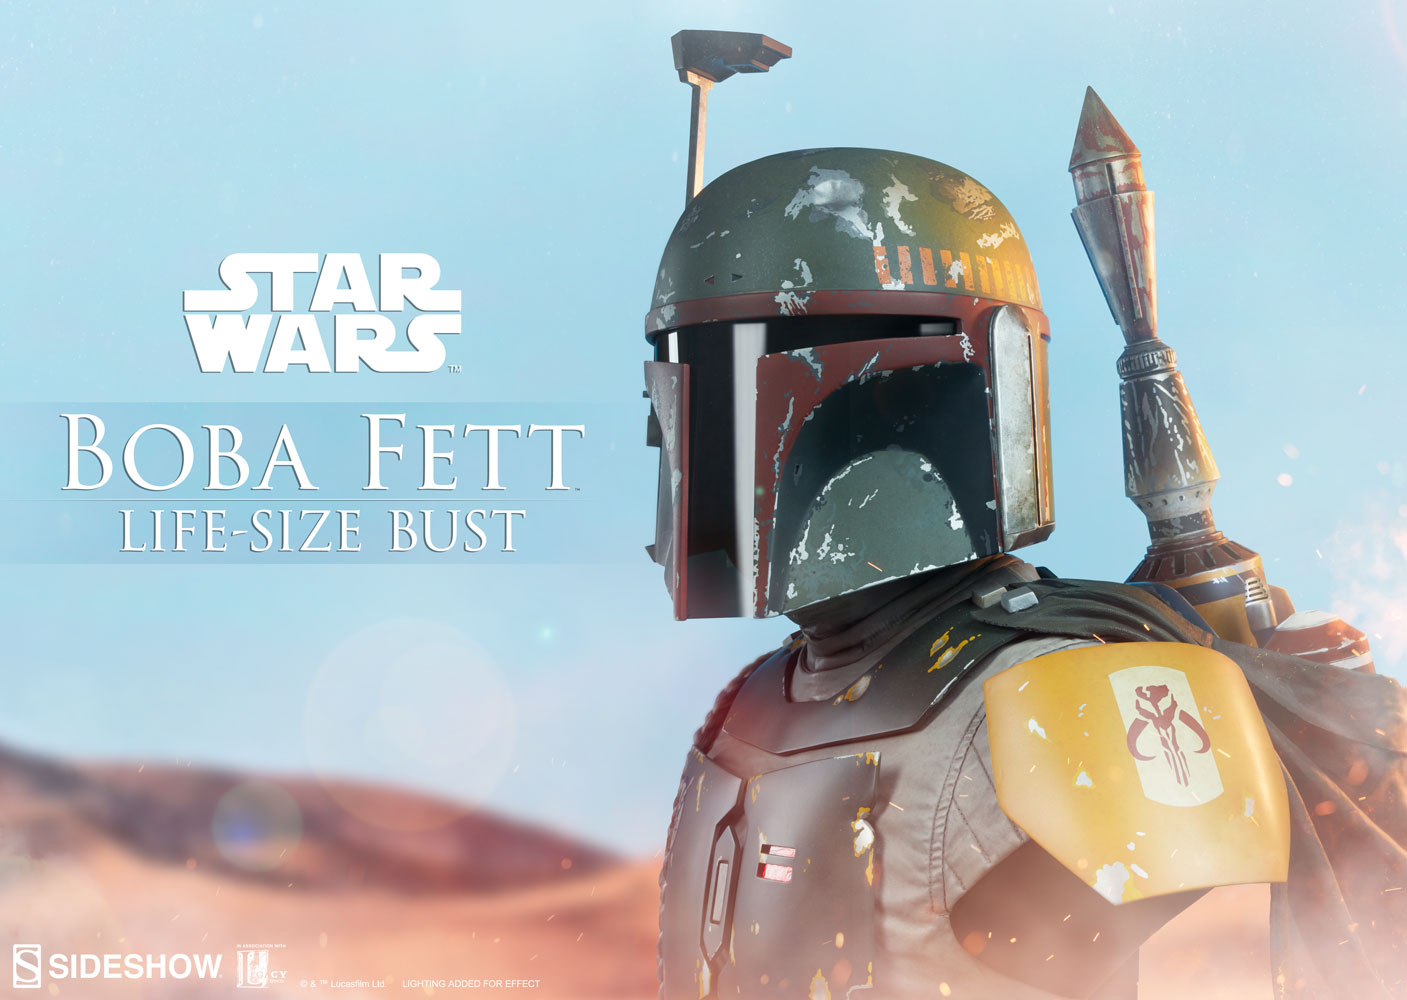 Pre-Order Sideshow Star Wars Boba Fett Life Size Bust